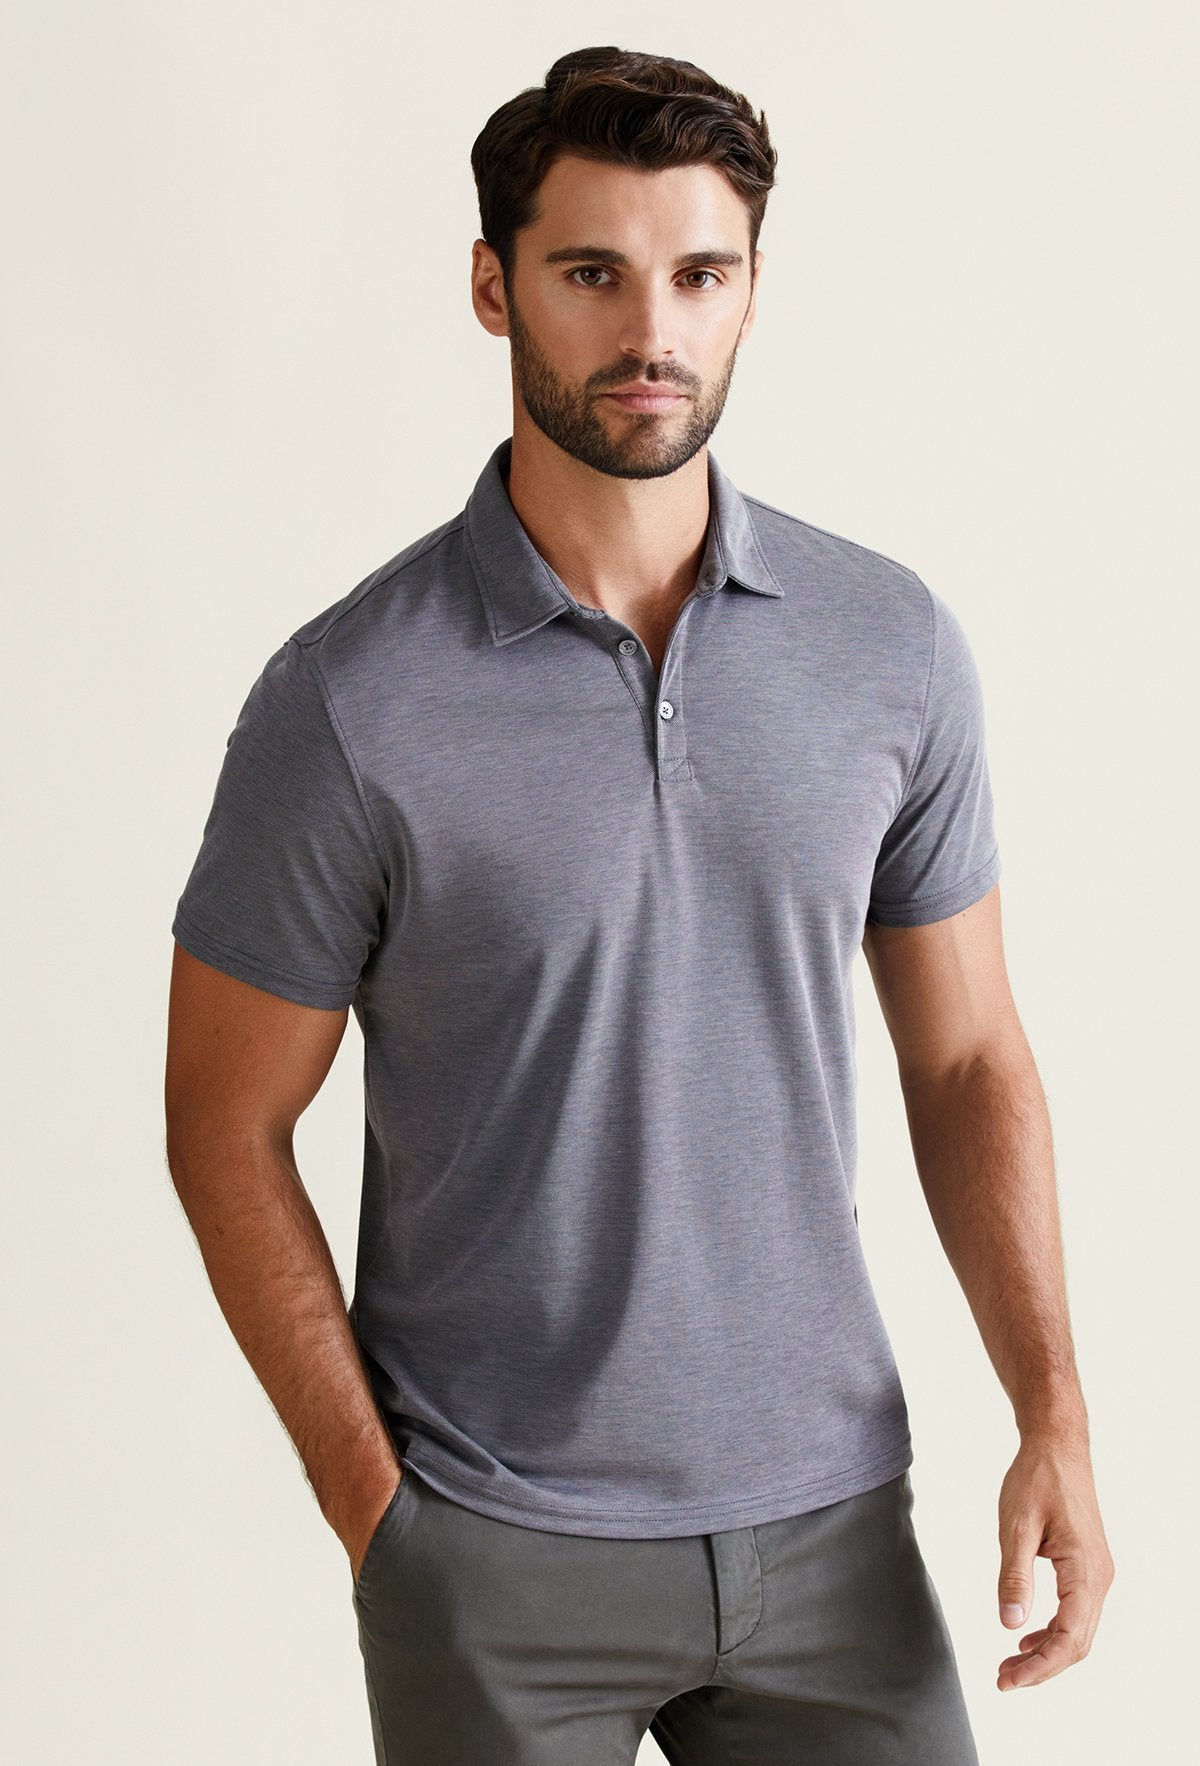 men's lightweight breathable polo shirt charcoal